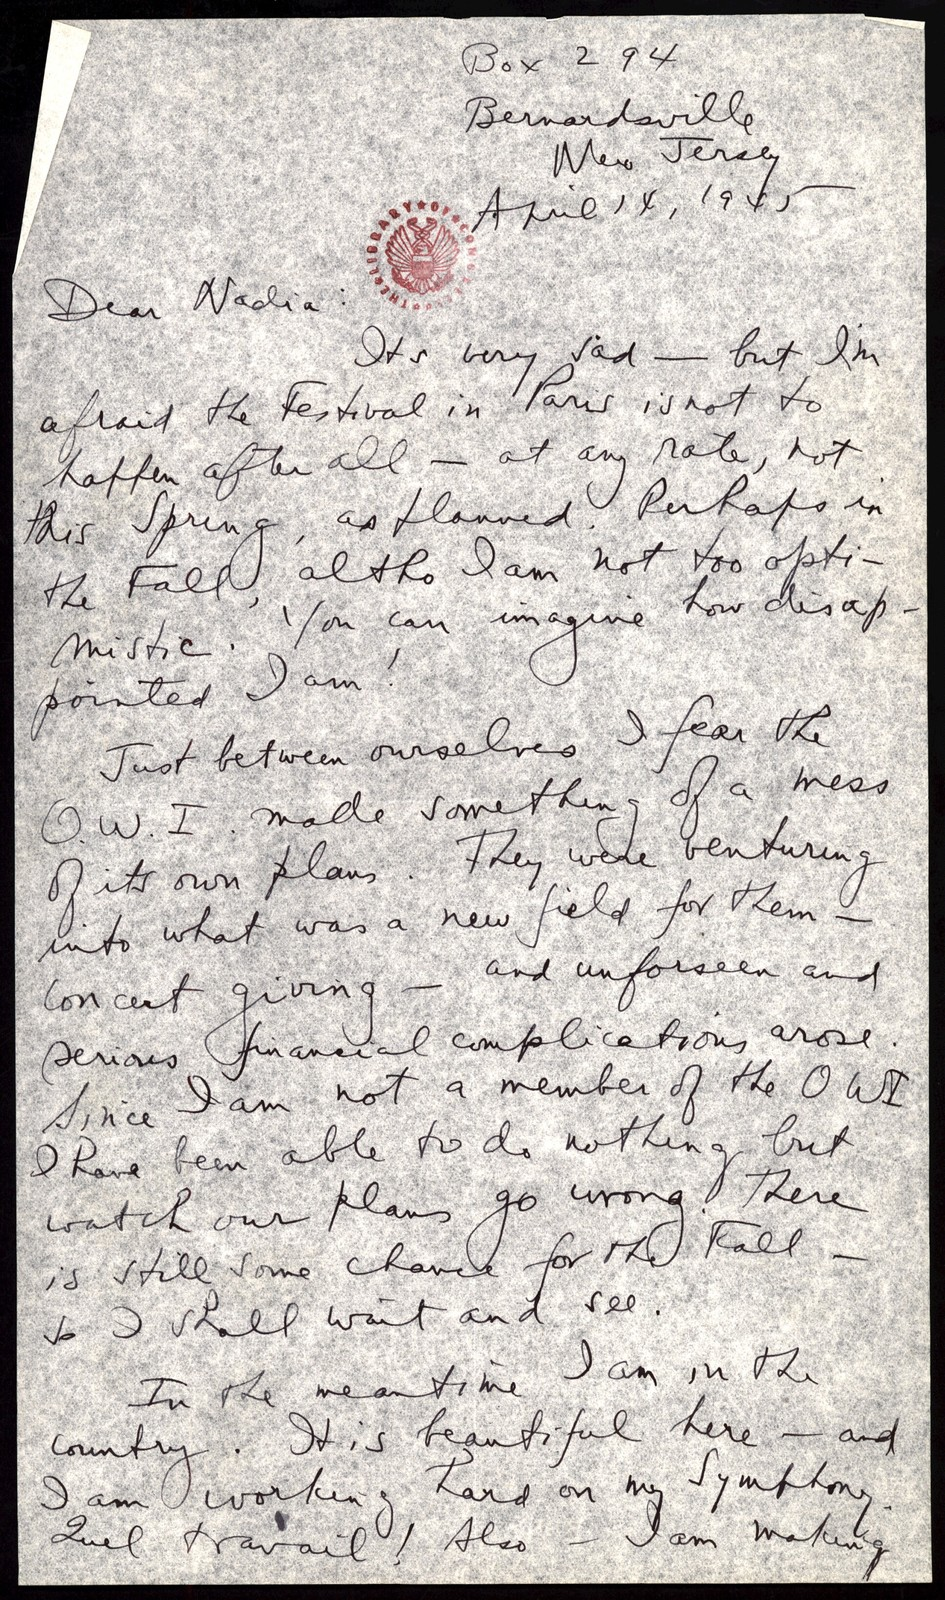 Letter from Aaron Copland to Nadia Boulanger, April 14, 1945.